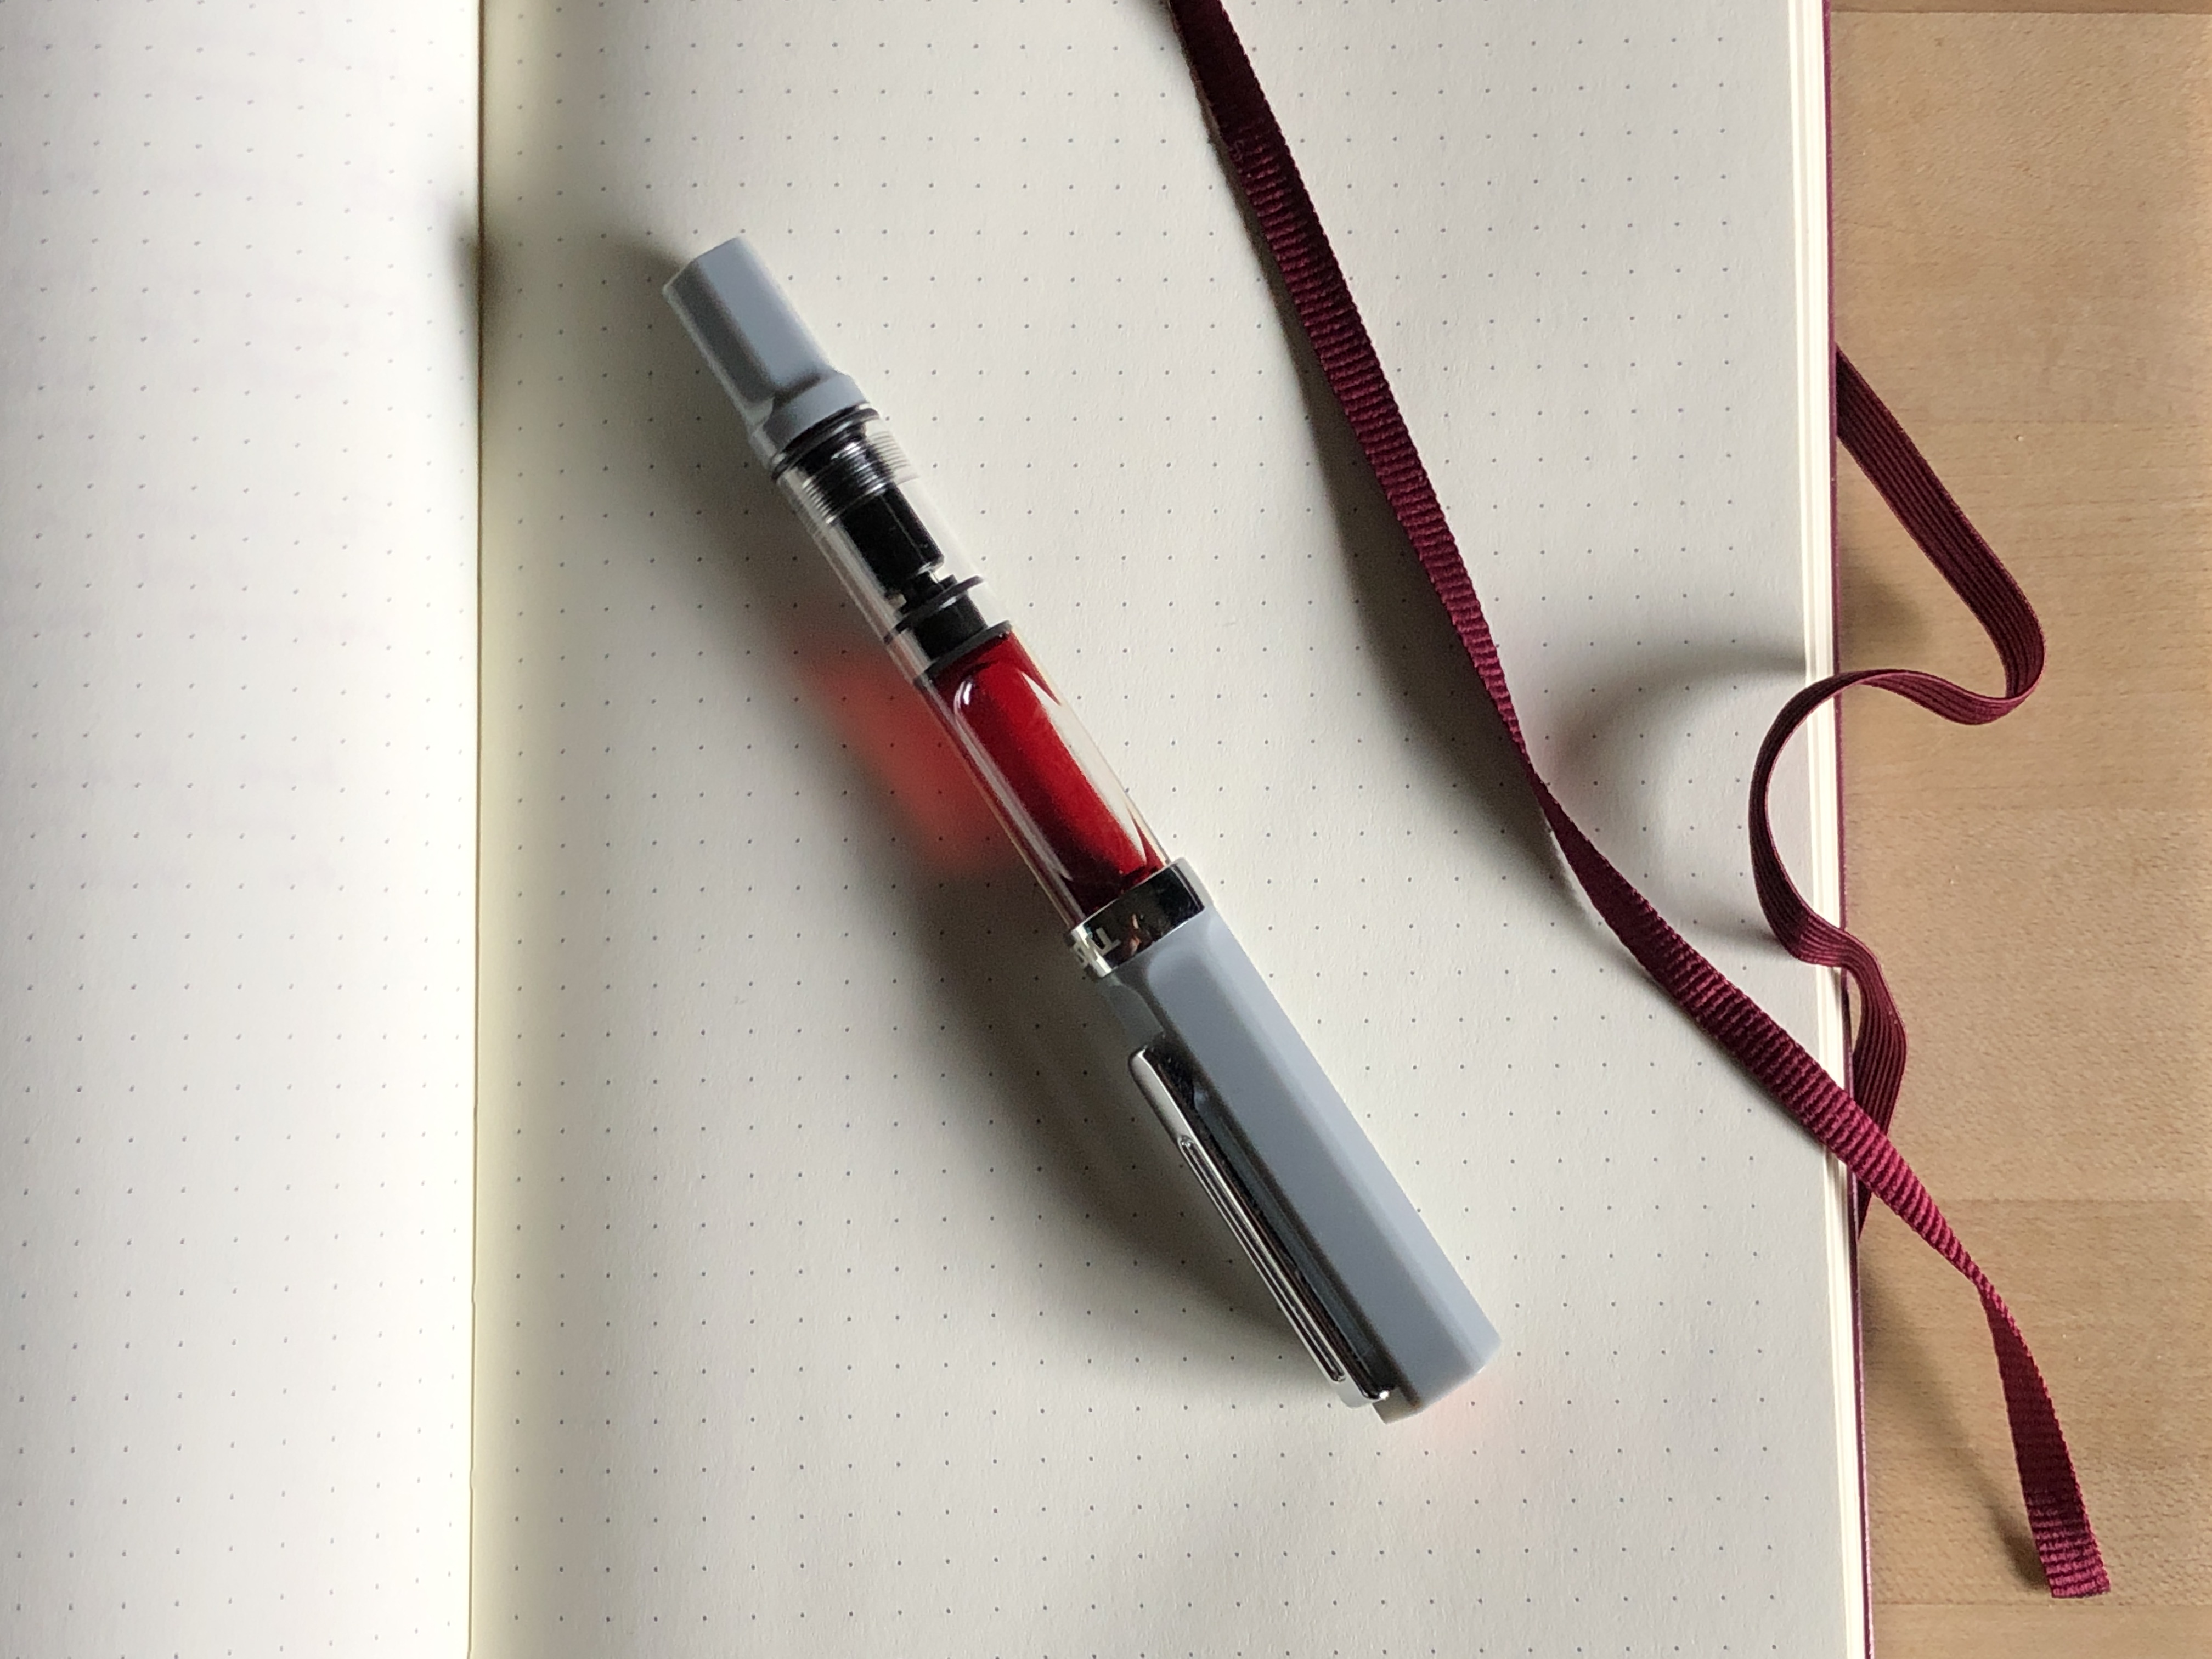 A pen with a clear barrel and filled with orange ink sitting on a notebook page.